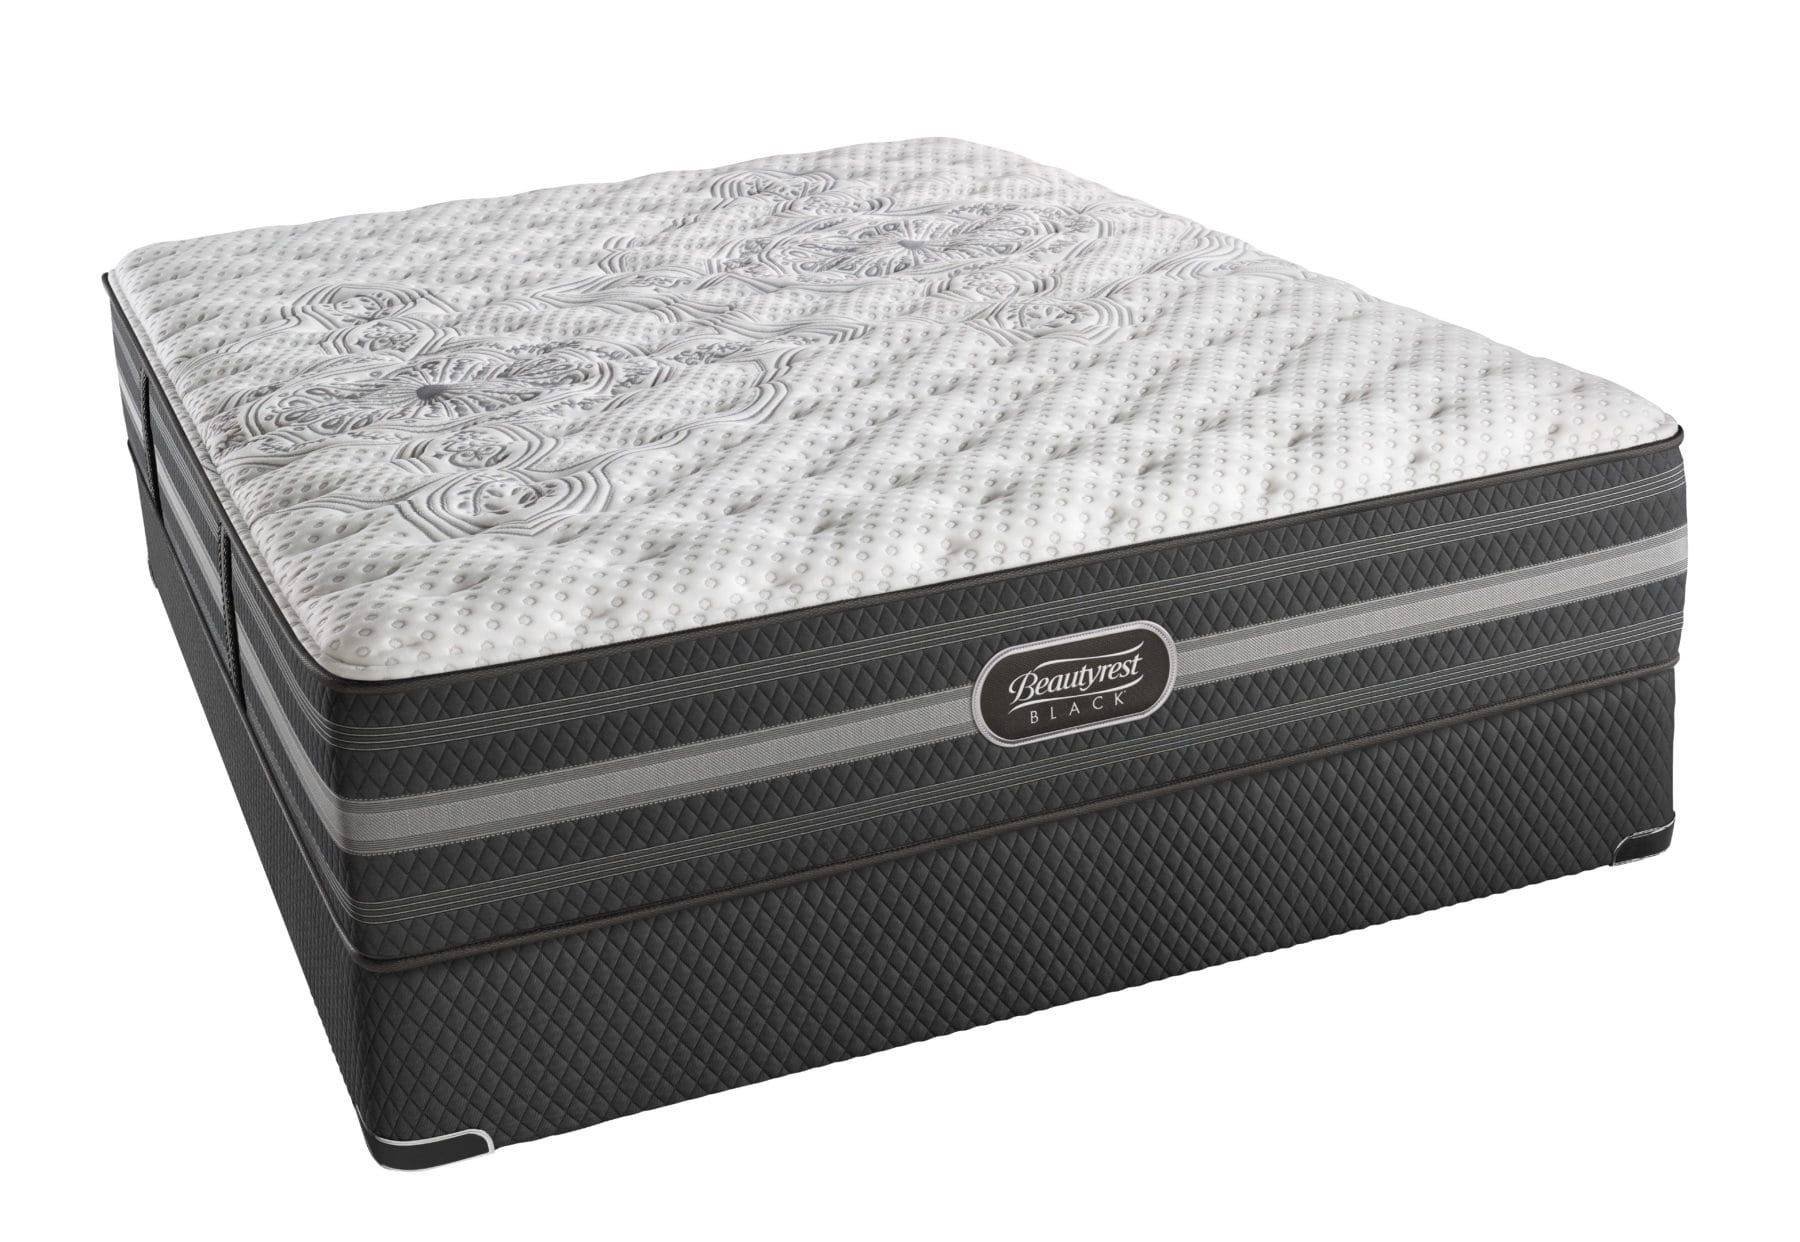 beautyrest black calista extra firm mattress beautyrest blacka is